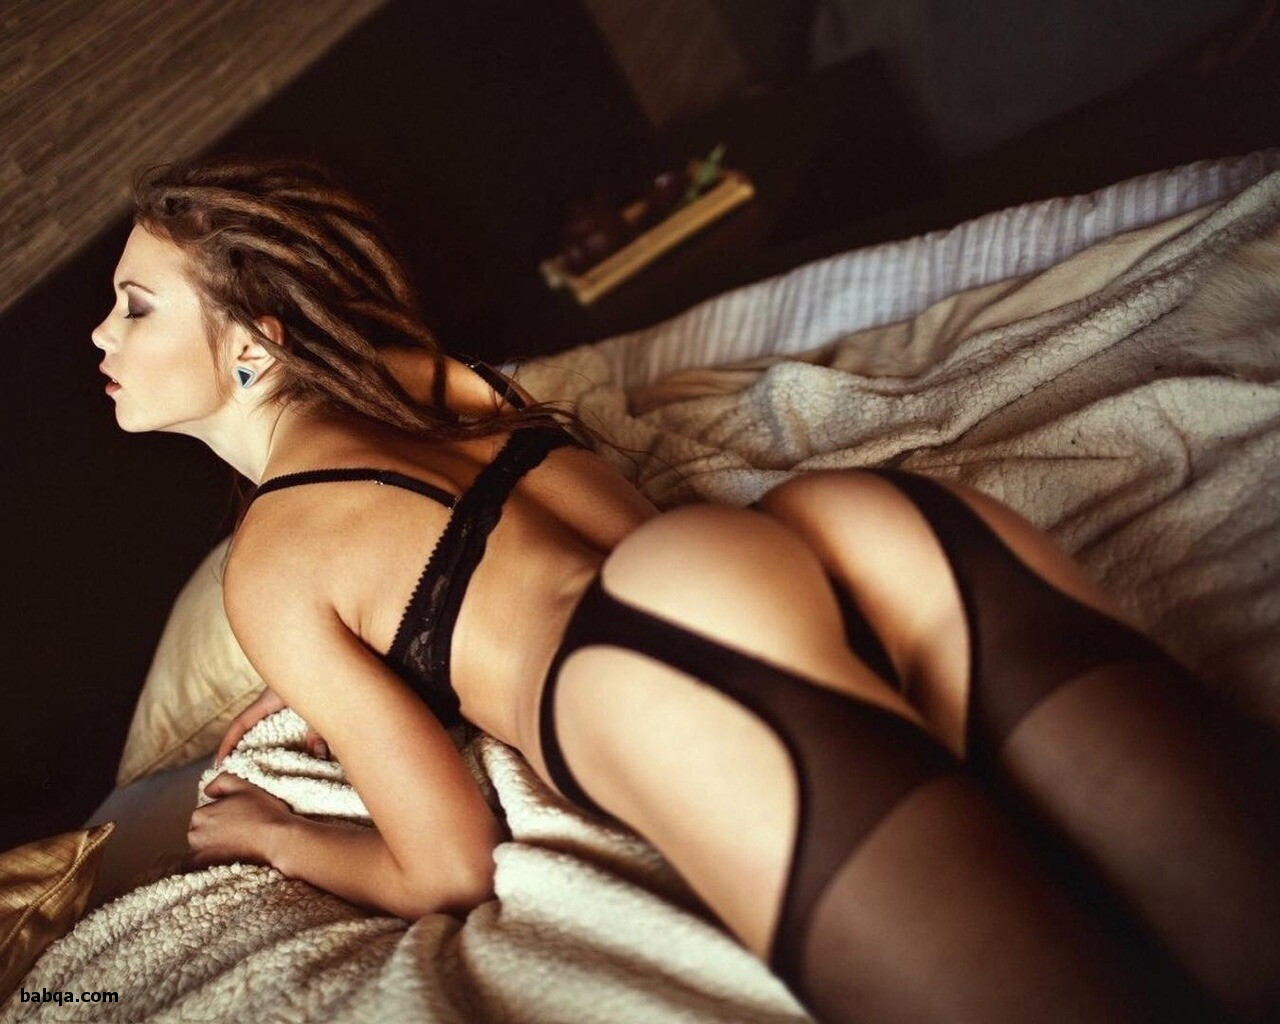 women in suspenders and stockings and spicy lingerie com